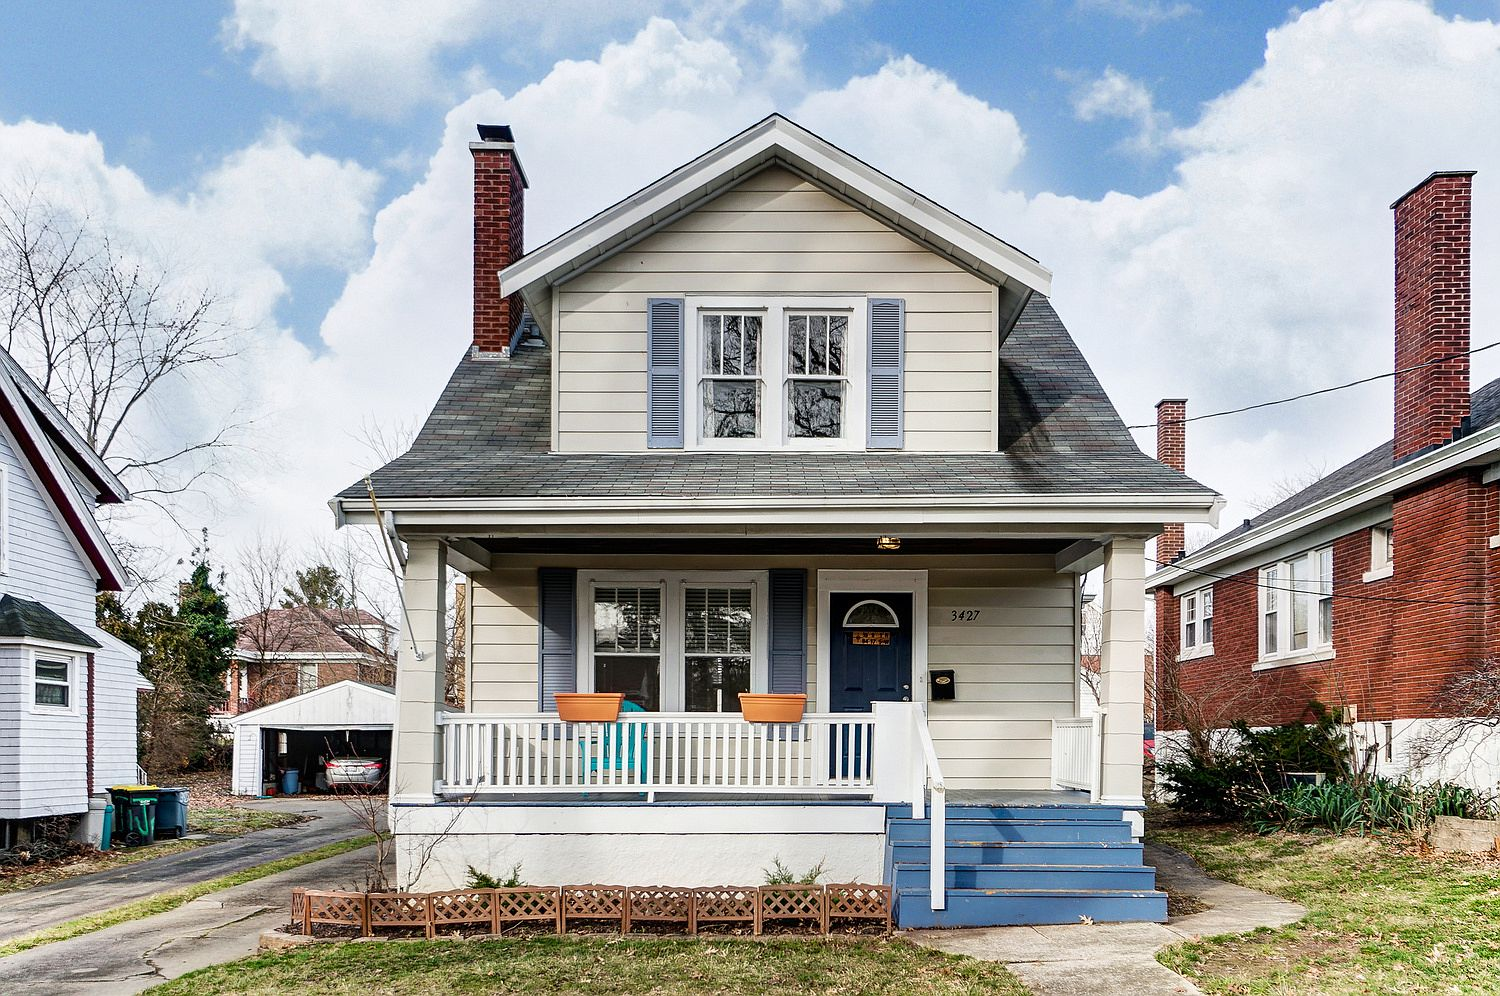 3427 Mayfair Ave Cincinnati Oh 45211 Zillow